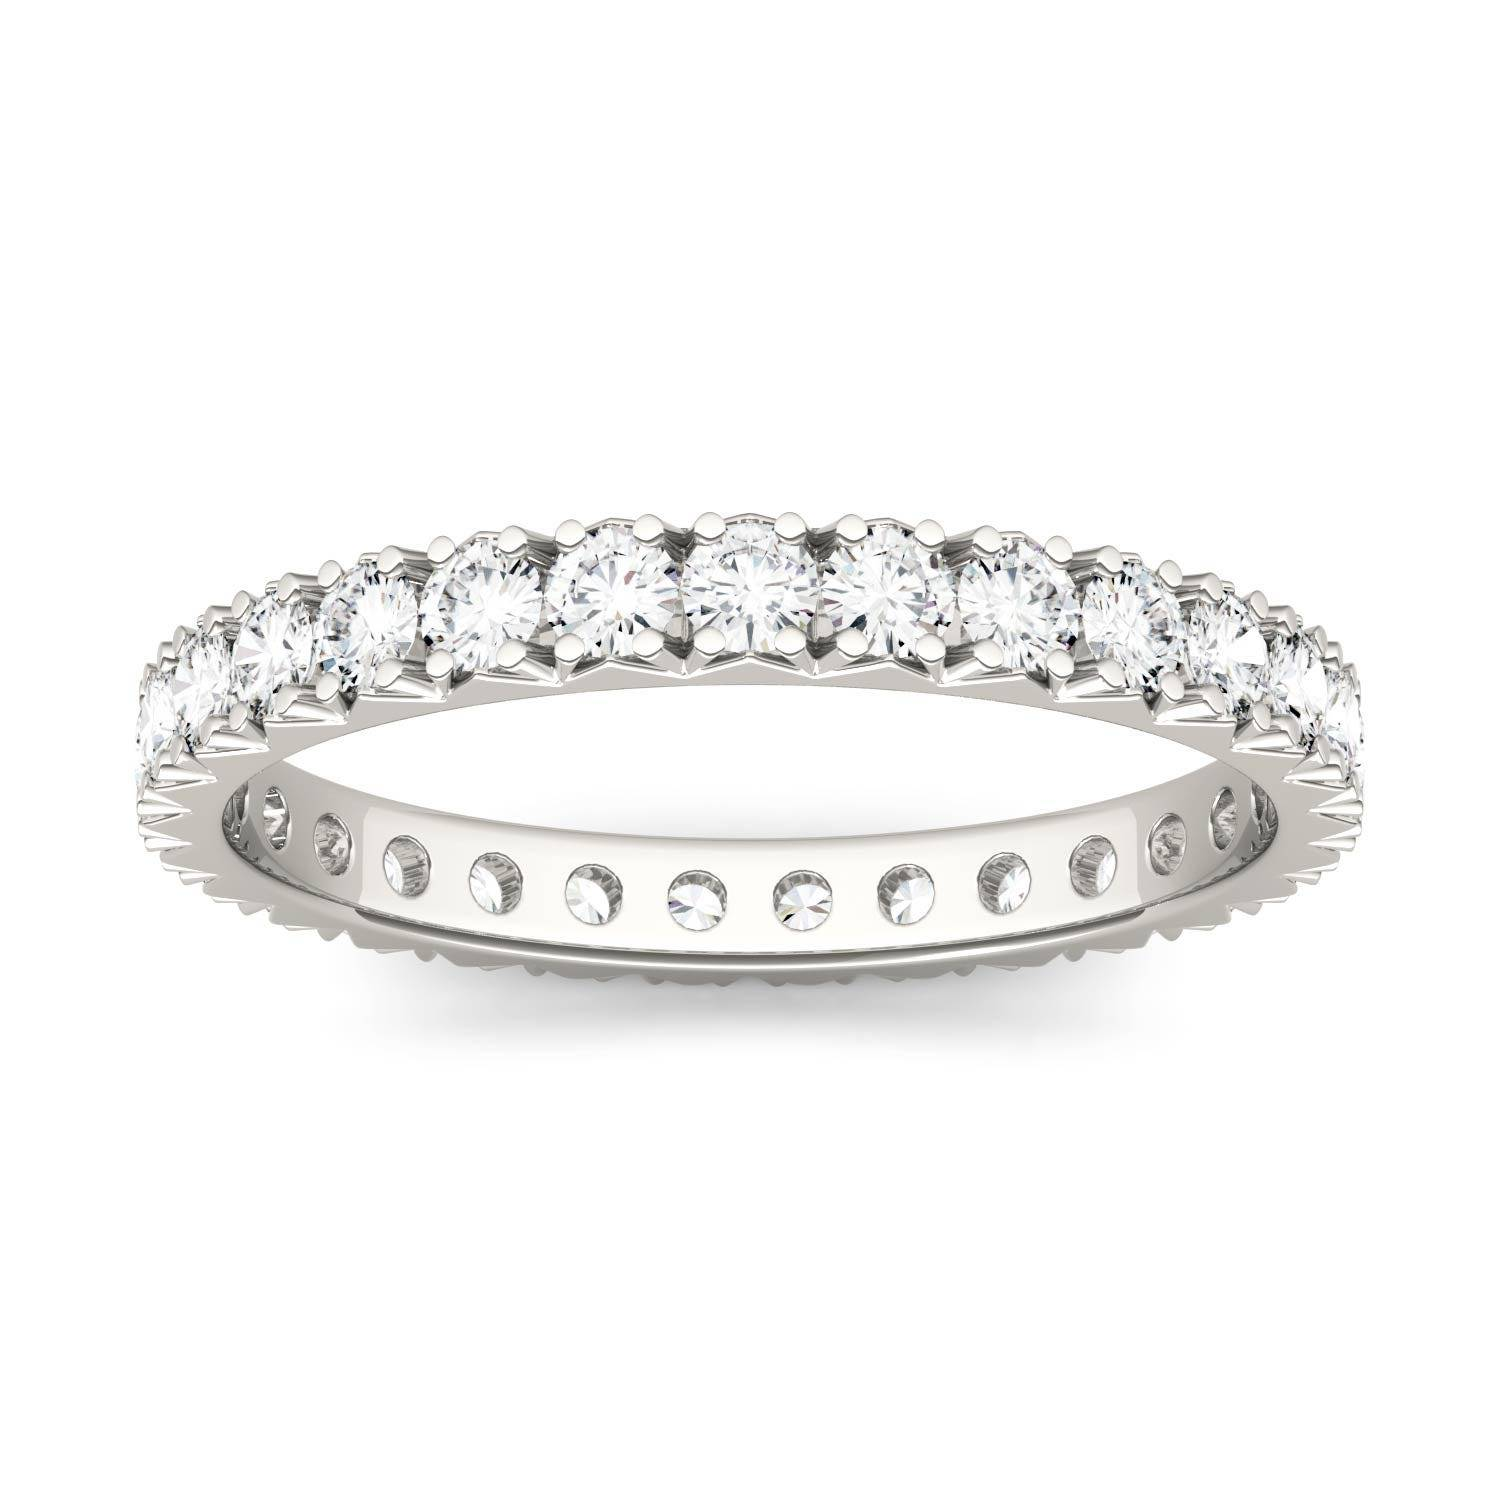 Charles & Colvard Eternity Prong Set Band Wedding Ring in 14K White Gold, Size: 8.5, 1.00CTW Round Forever One Moissanite Accent Stones Charles & Colvard  - White Gold - Size: 8.5